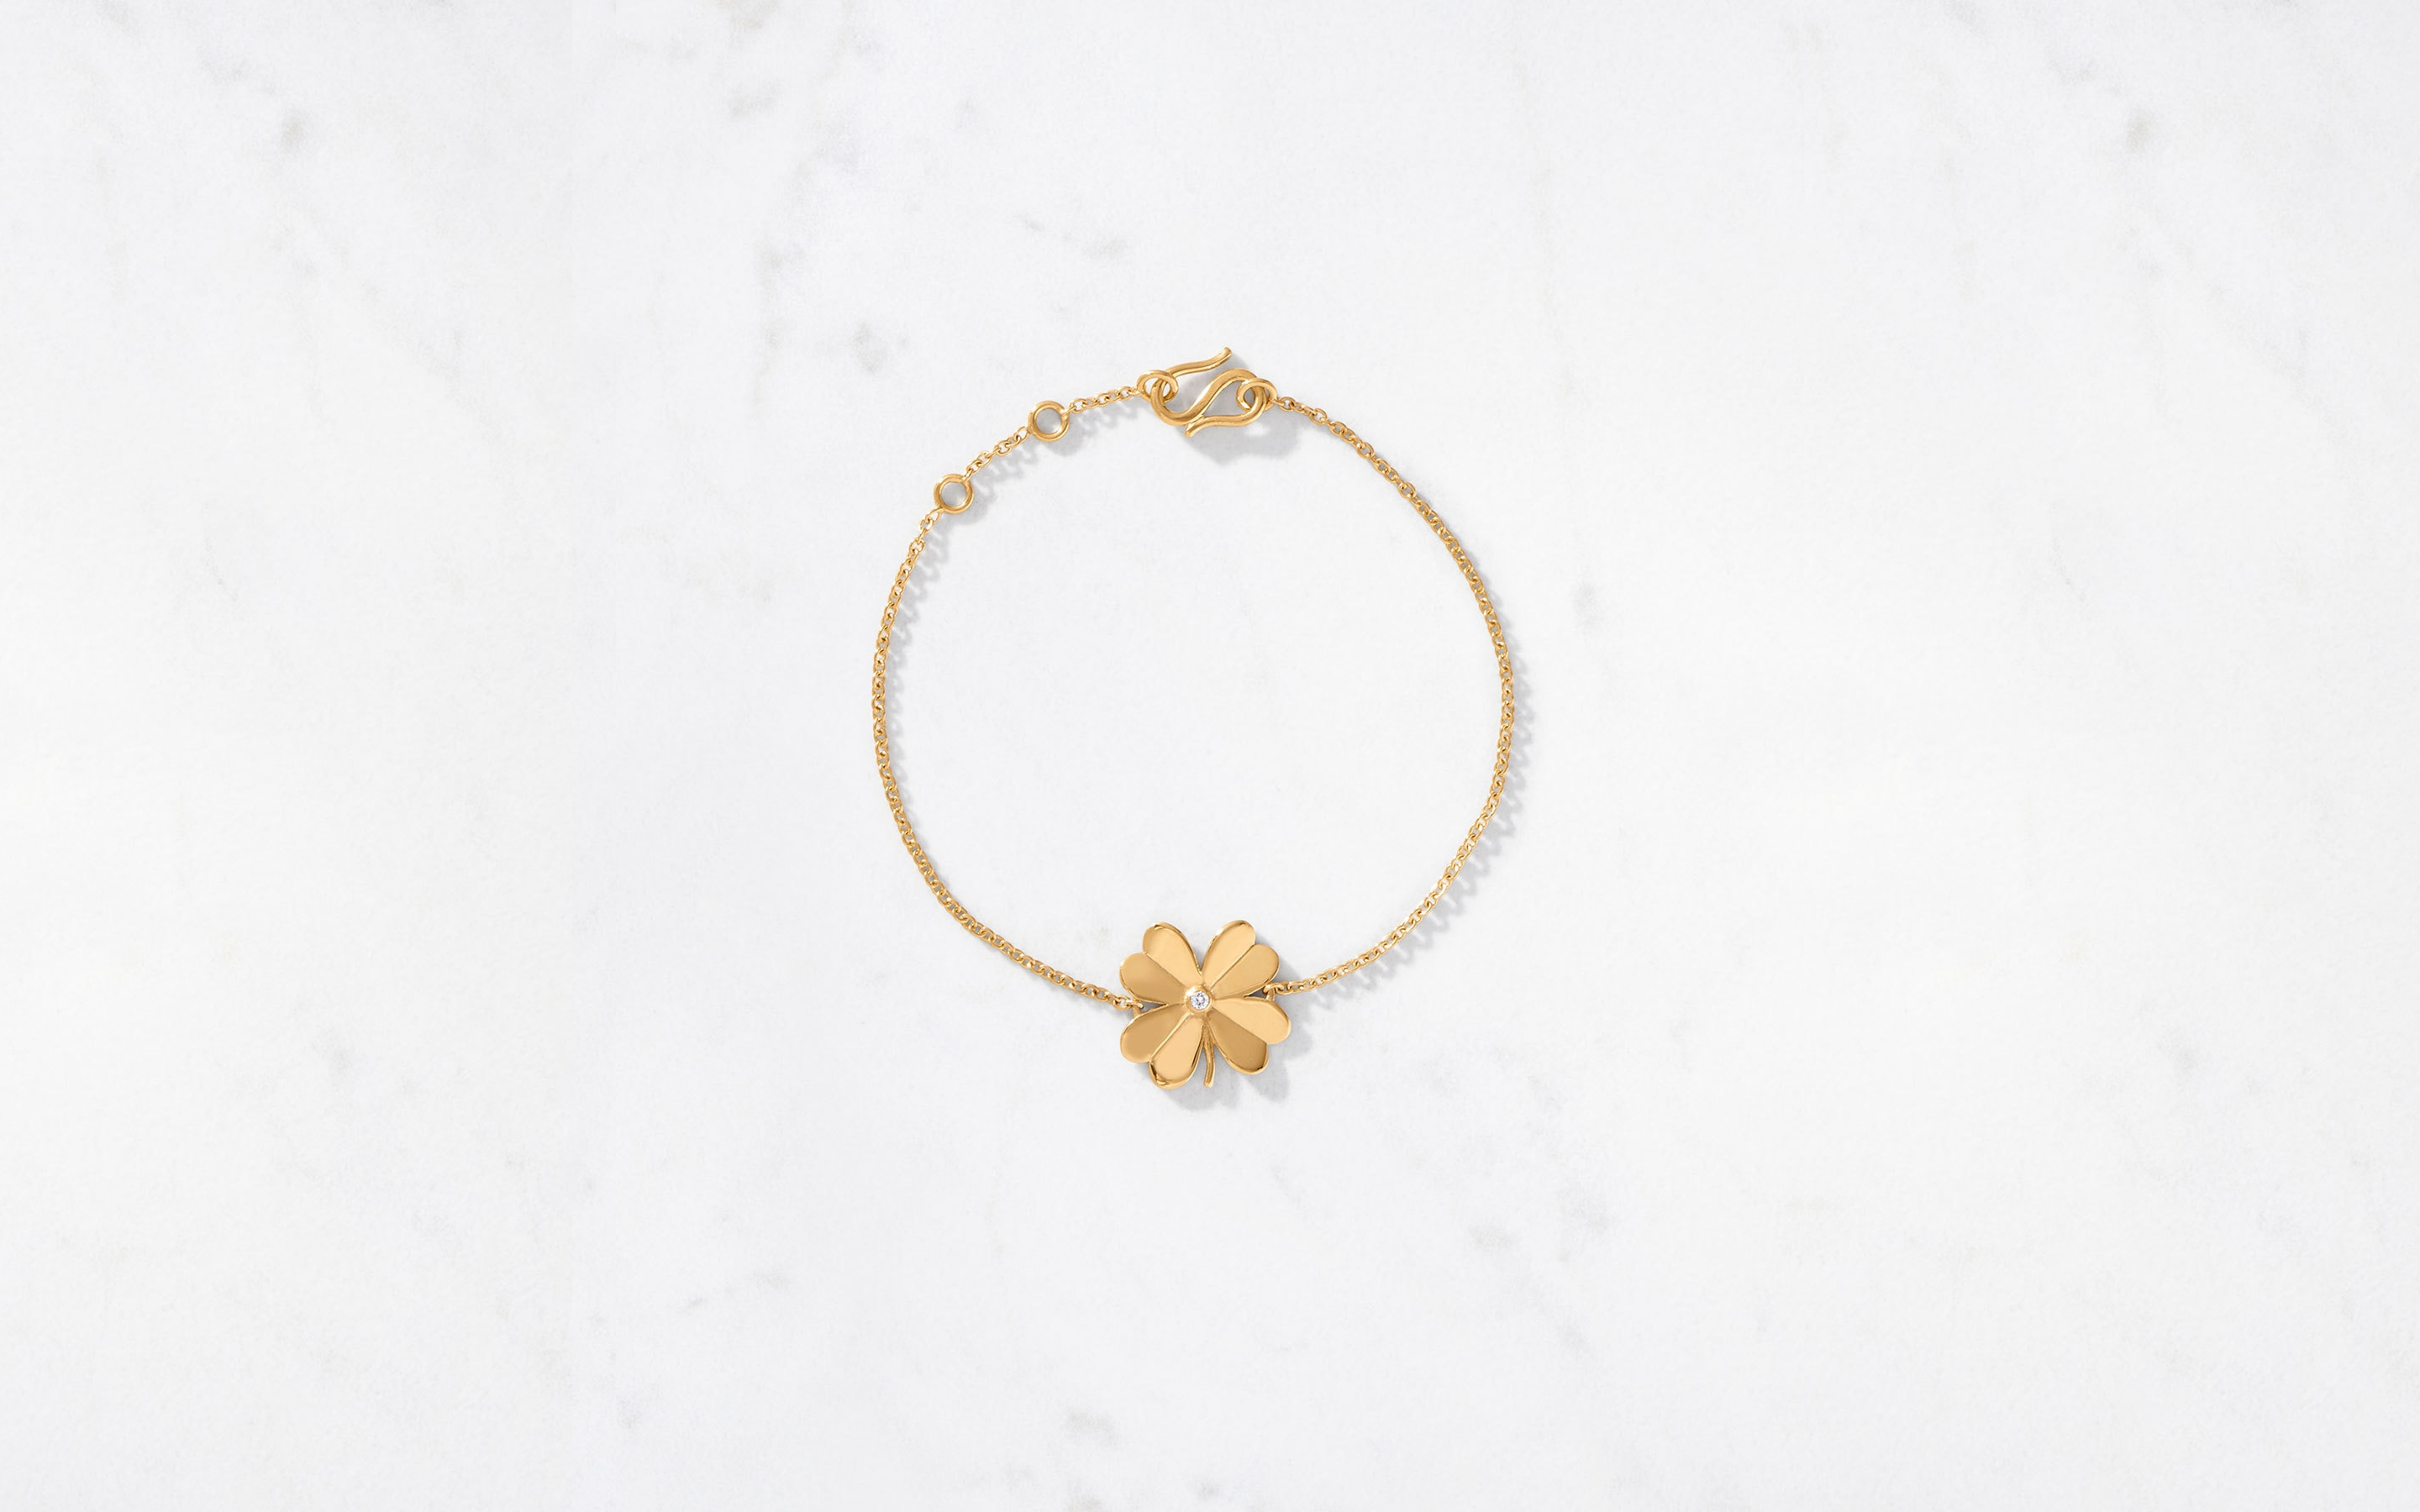 4 Leaf Clover Bracelet Polished